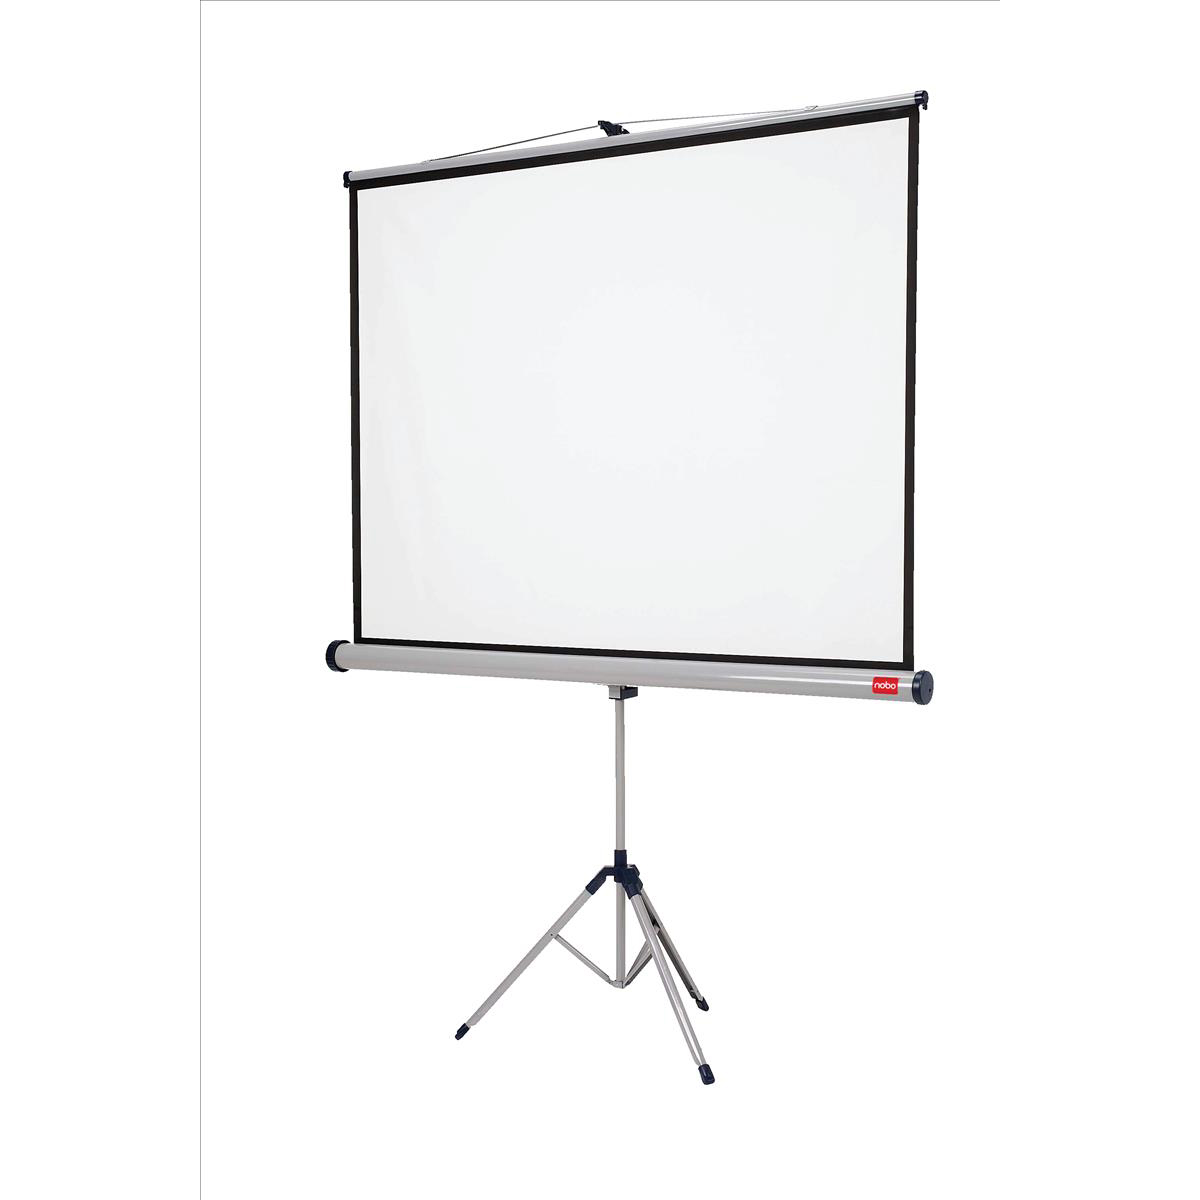 Projection screens Nobo Tripod Widescreen Projection Screen W1750xH1150 Ref 1902396W